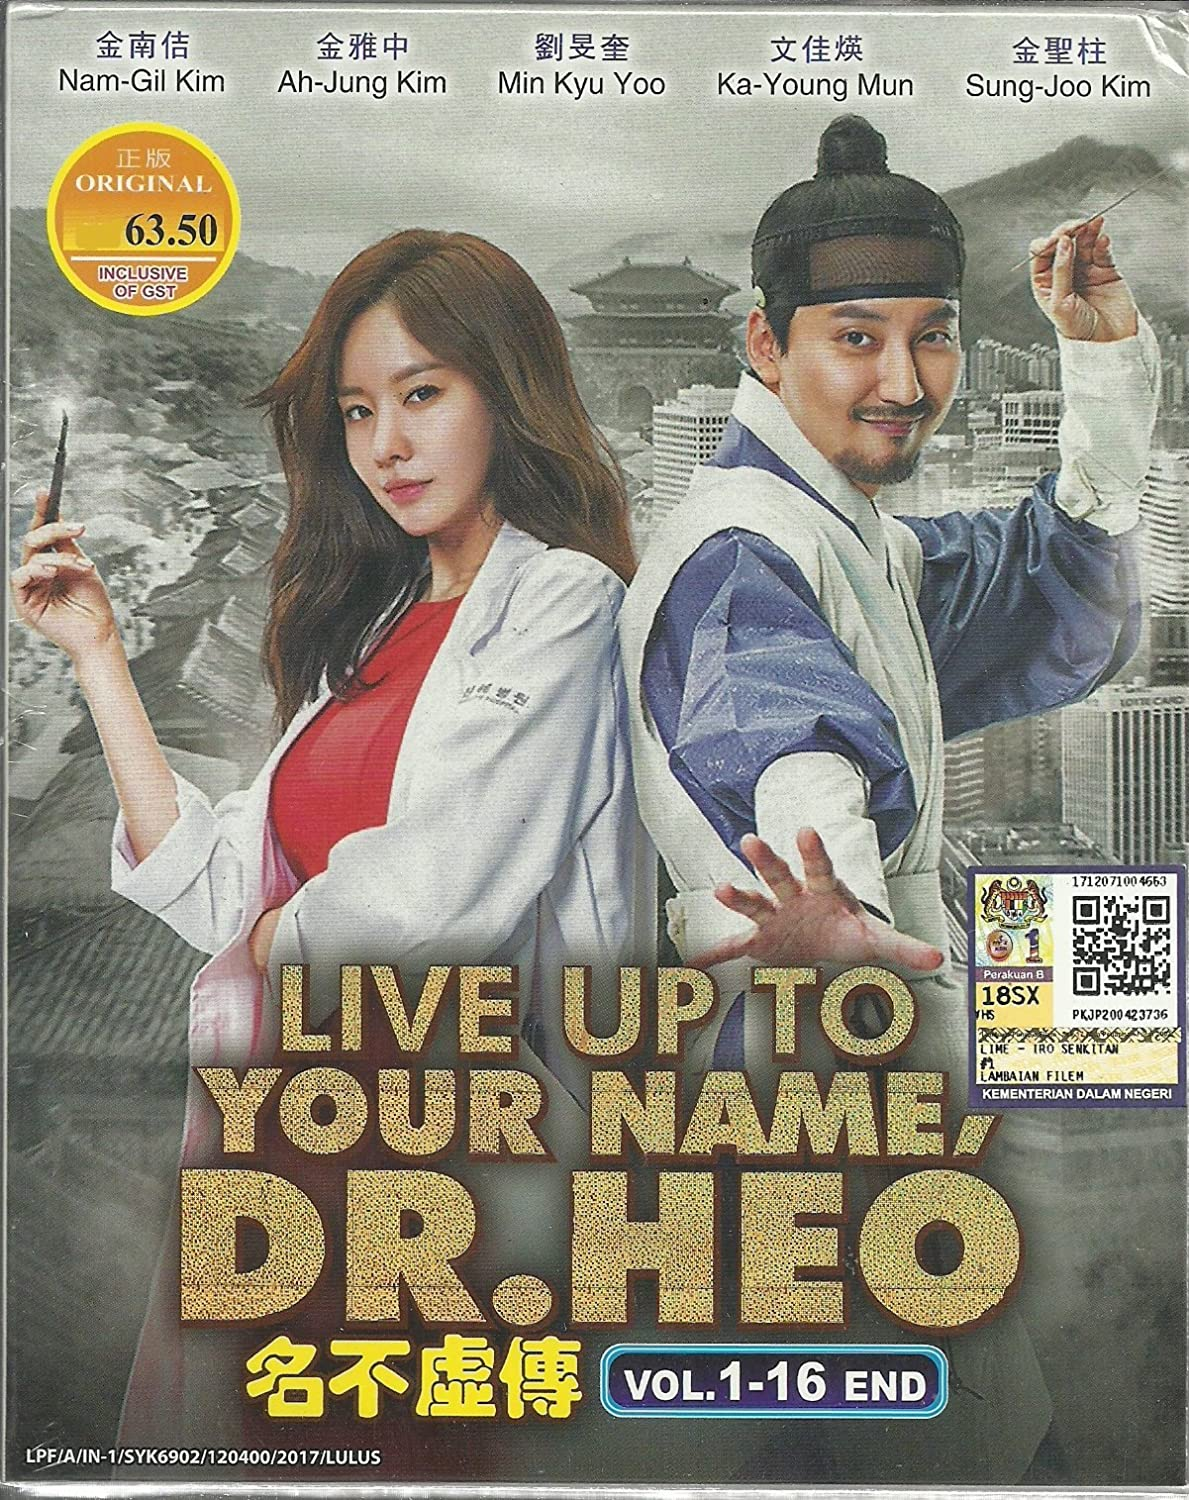 Live Up To Your Name Dr Heo Complete Korean Tv Series 1 16 Episodes Dvd Box Sets Movies Tv